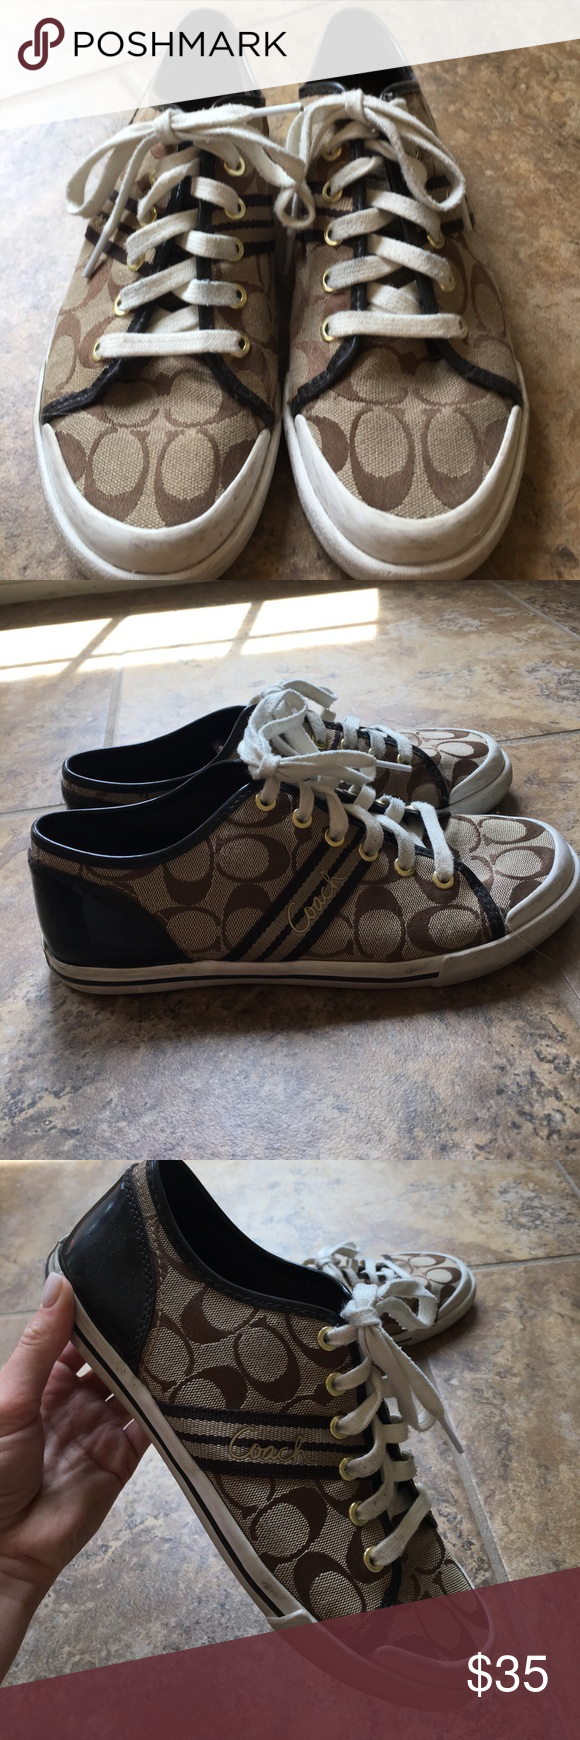 Coach Converse Style sneakers